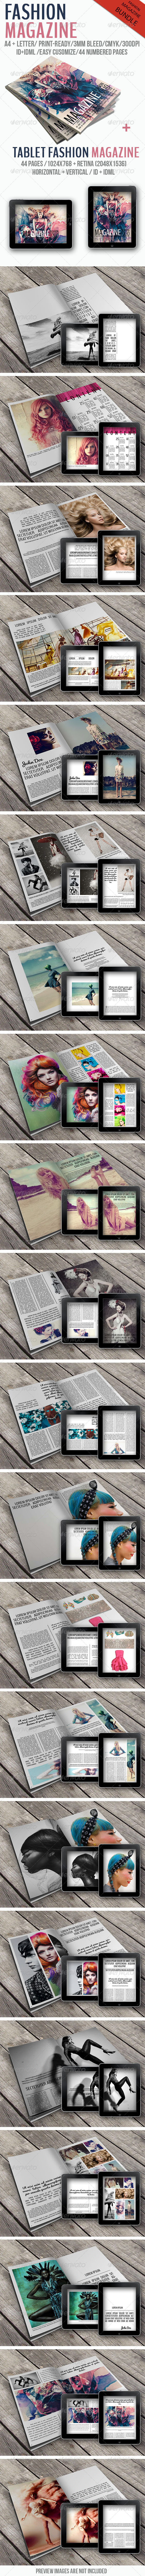 GraphicRiver Fashion Magazine Bundle 7513525